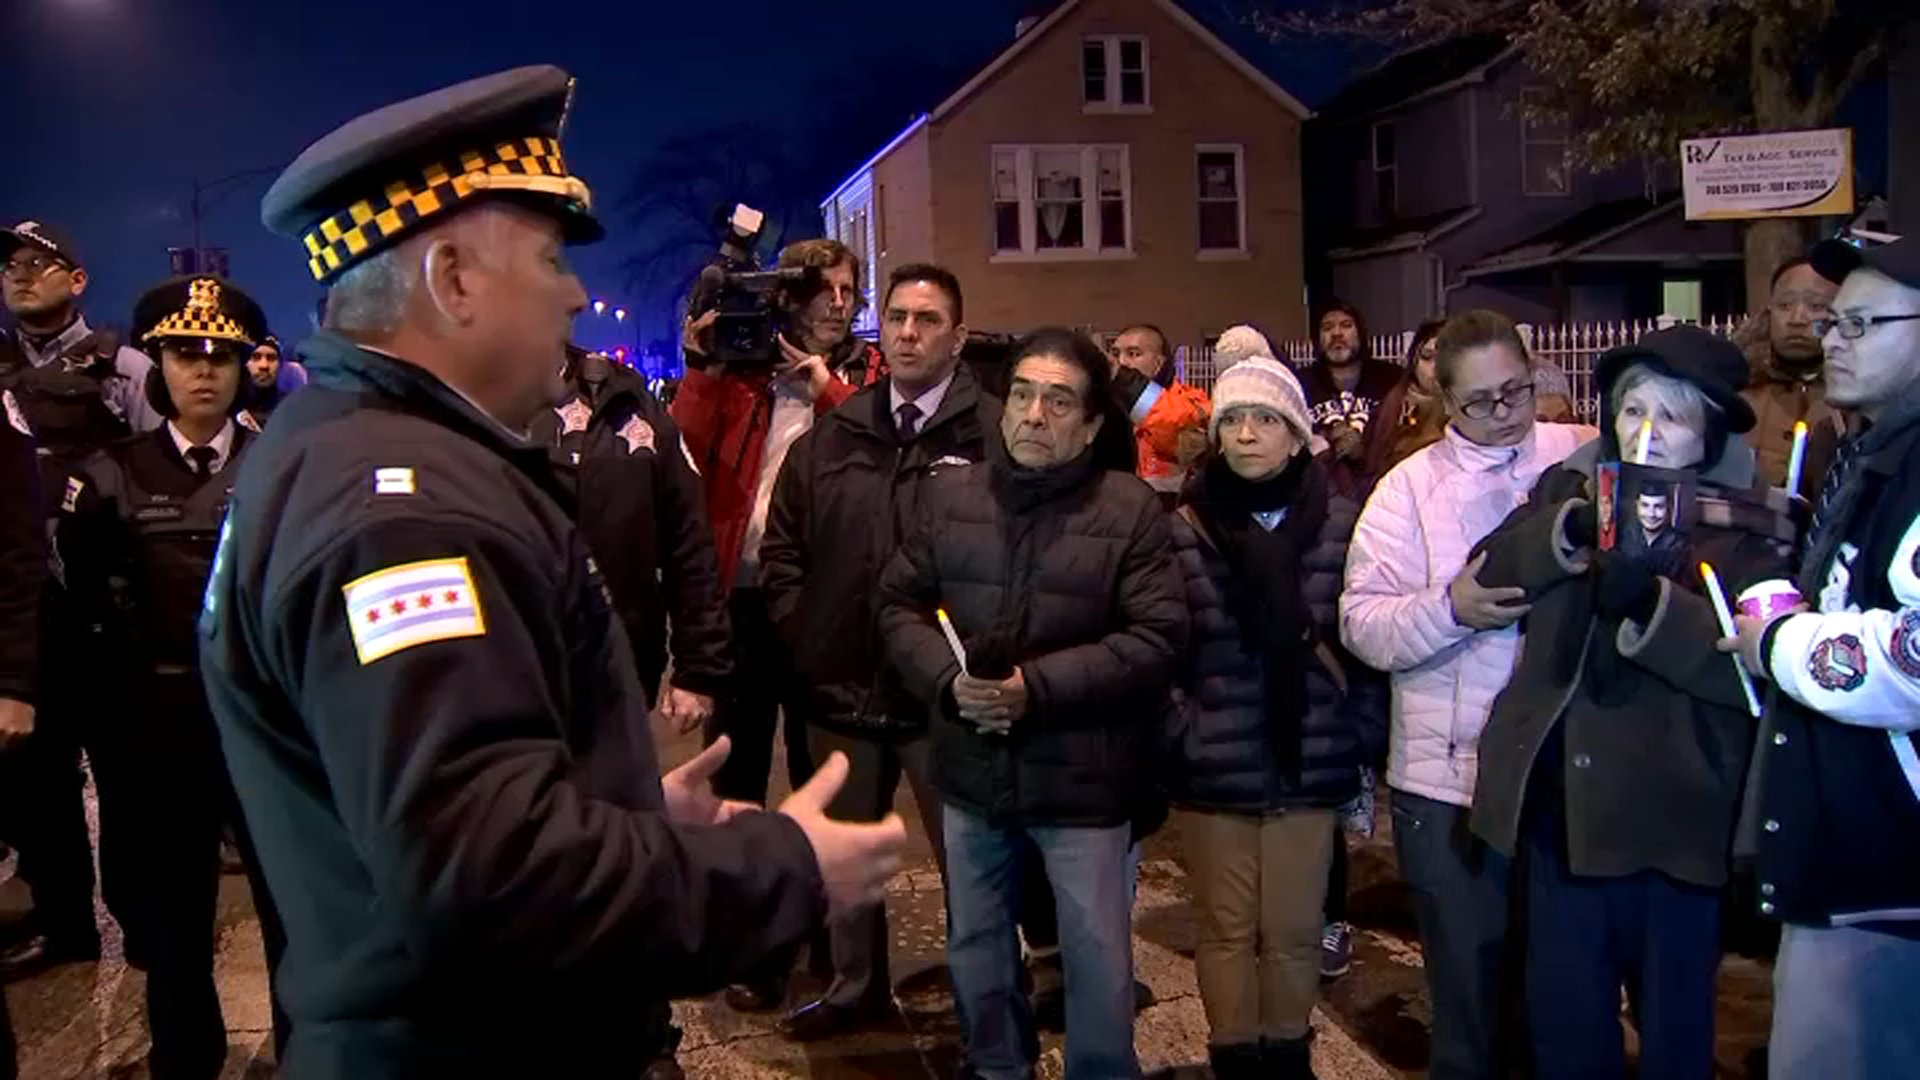 Police and community members gathered in Little Village